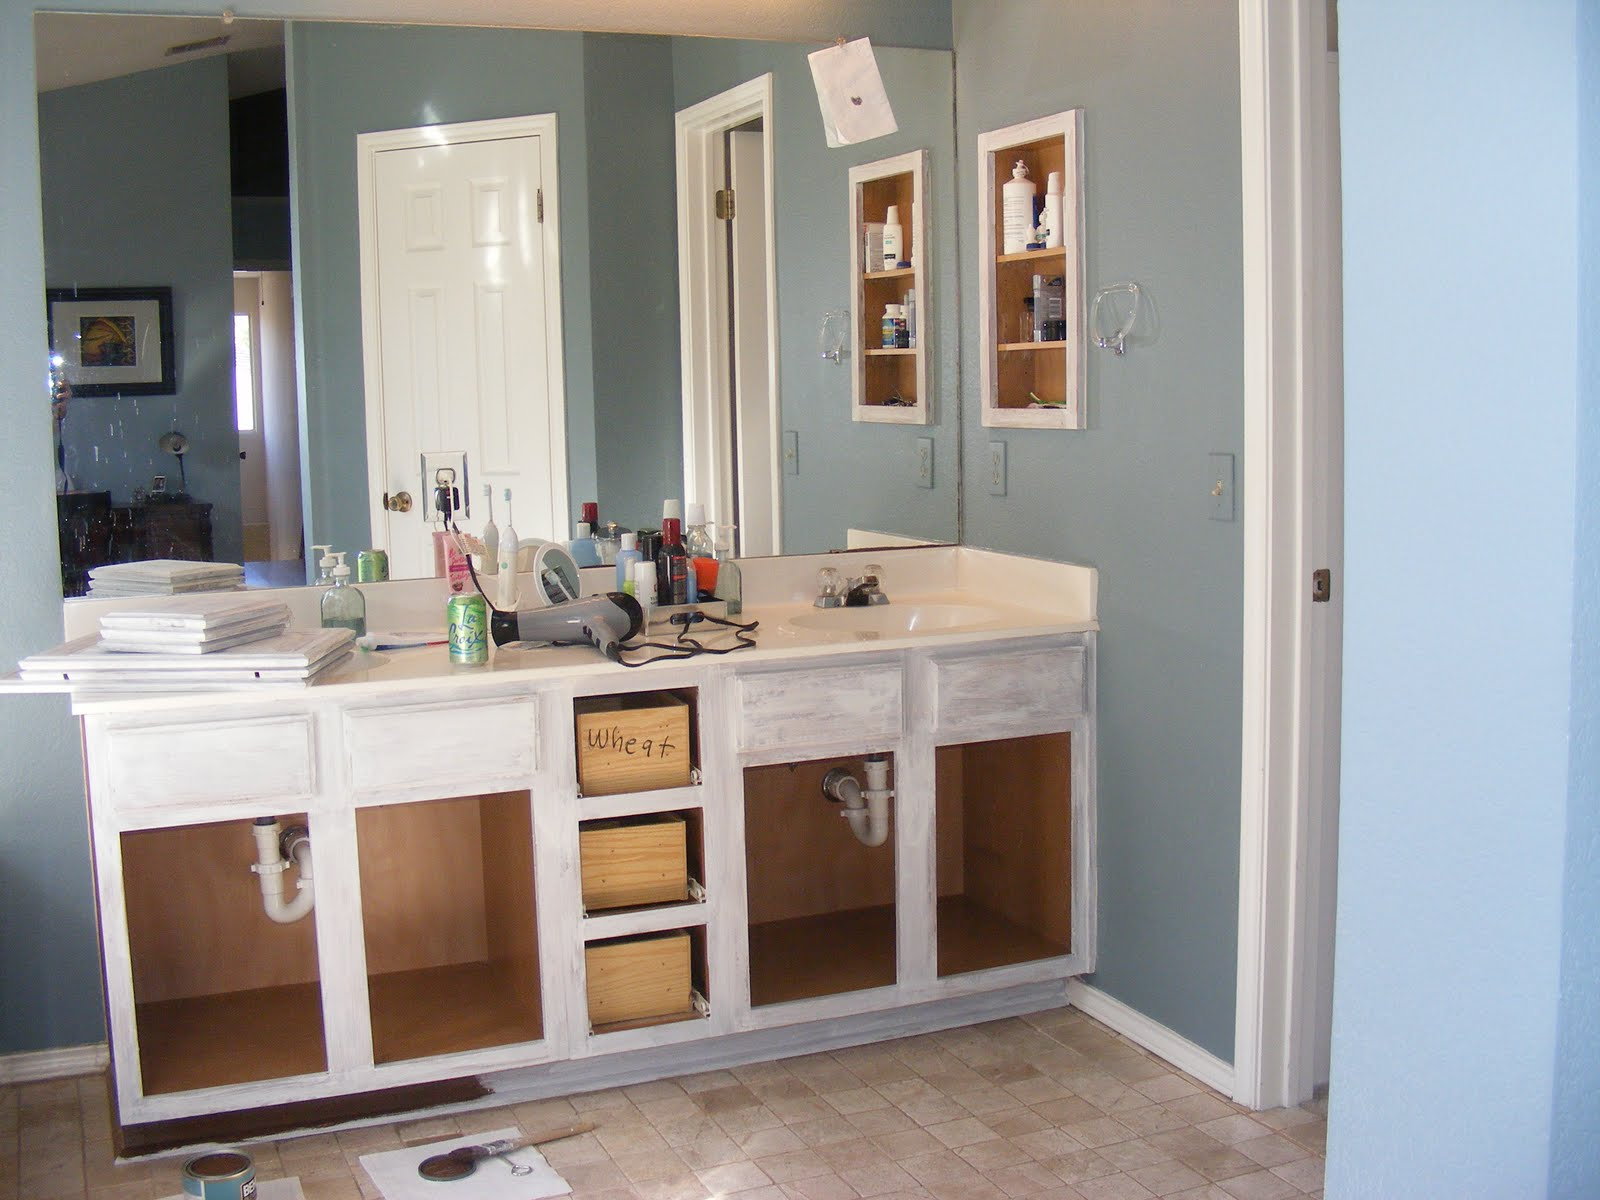 red's rave: how to strip and paint your bathroom vanity